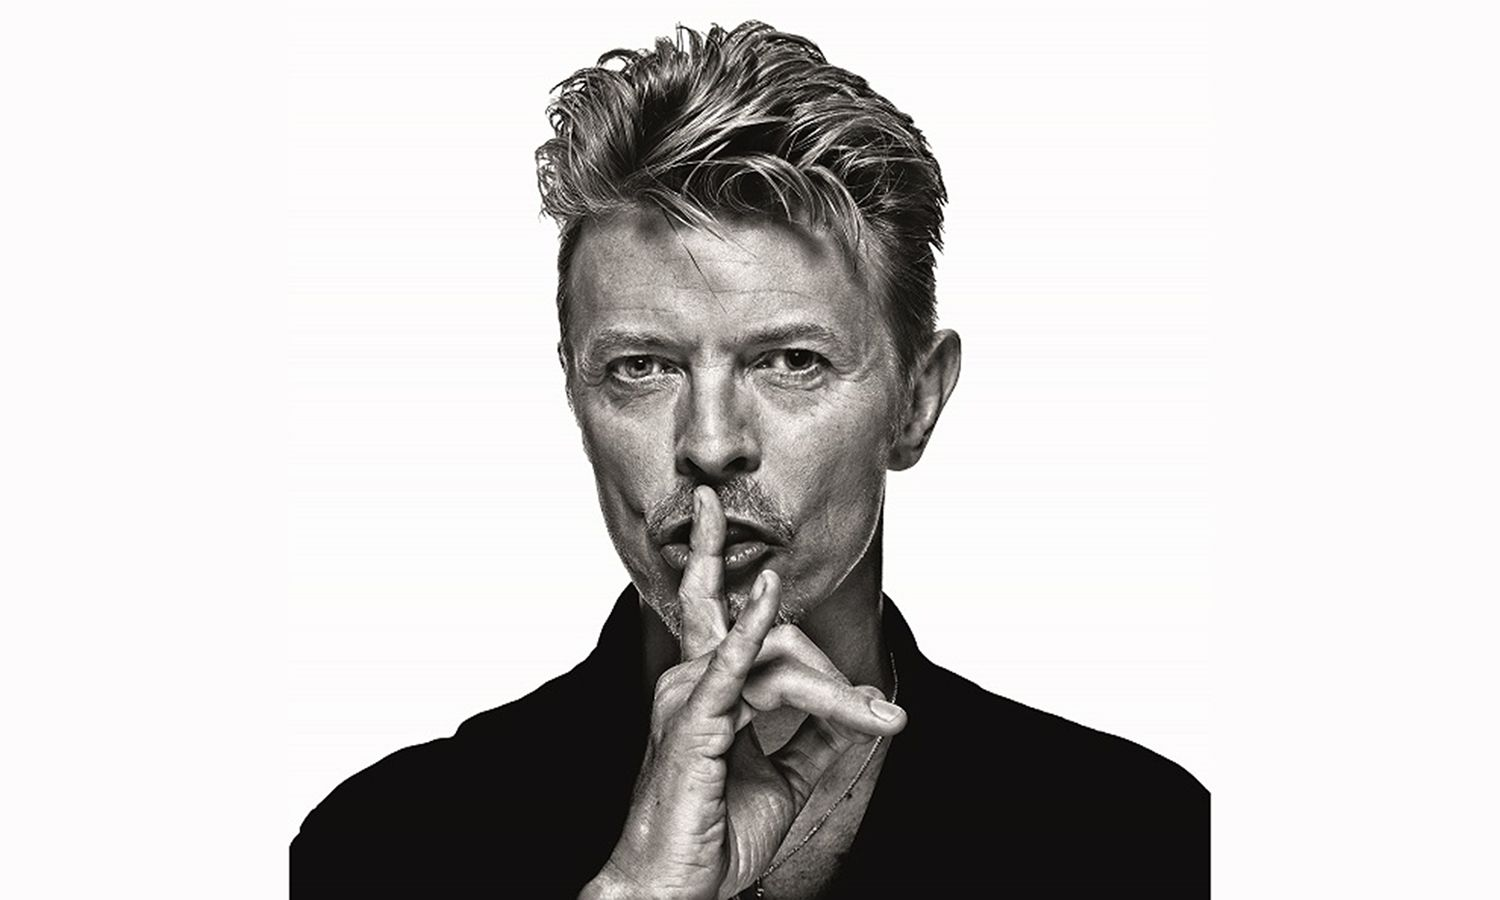 View the Best of David Bowie's Private Art Collection at Sotheby's Hong Kong